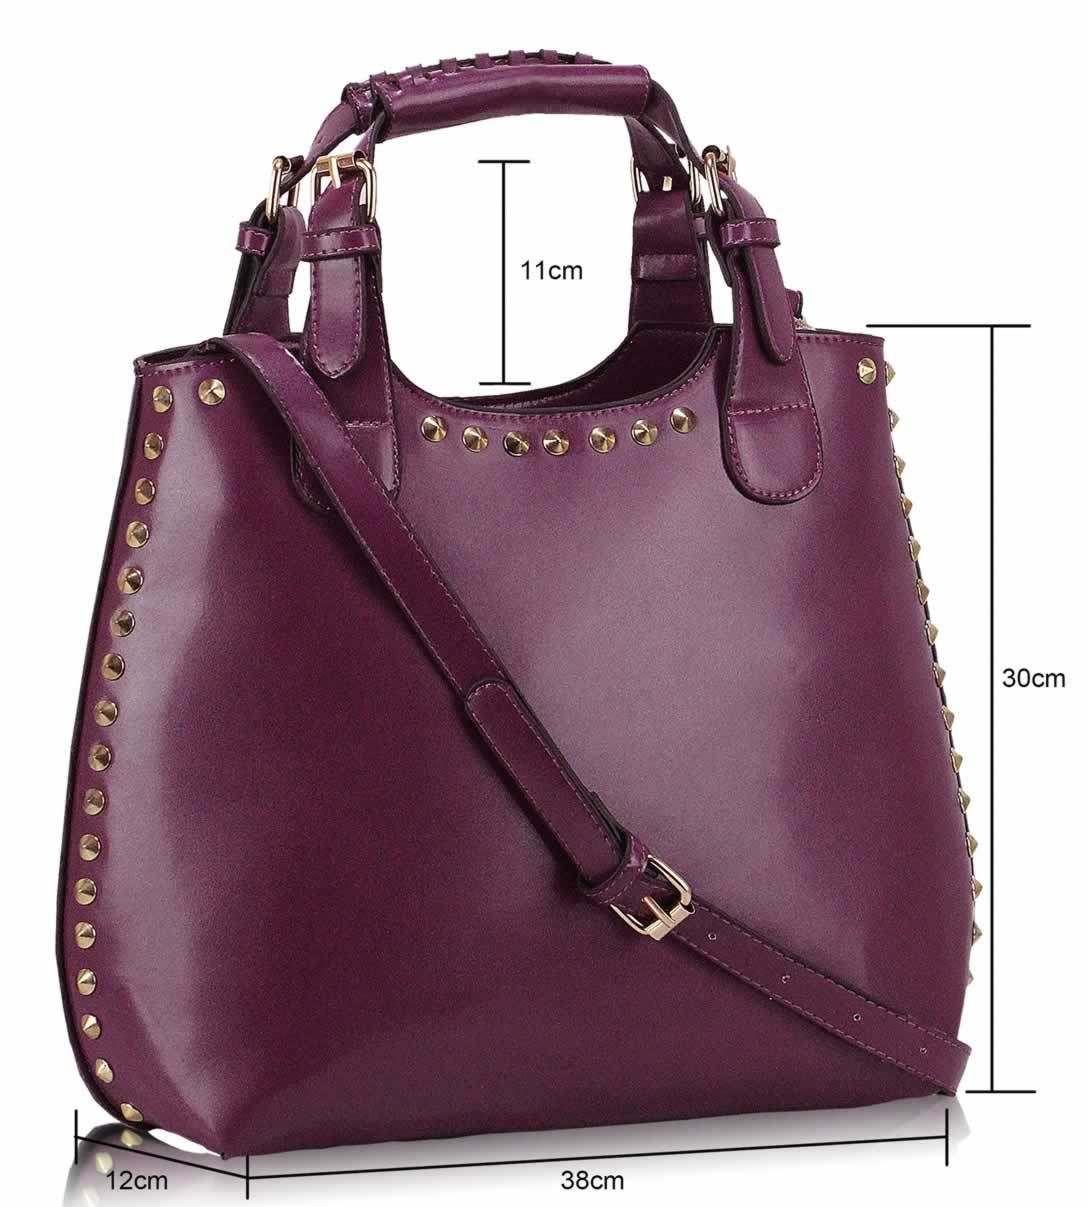 Celebrity Studded Bag Clothing and Accessories - Shopping.com